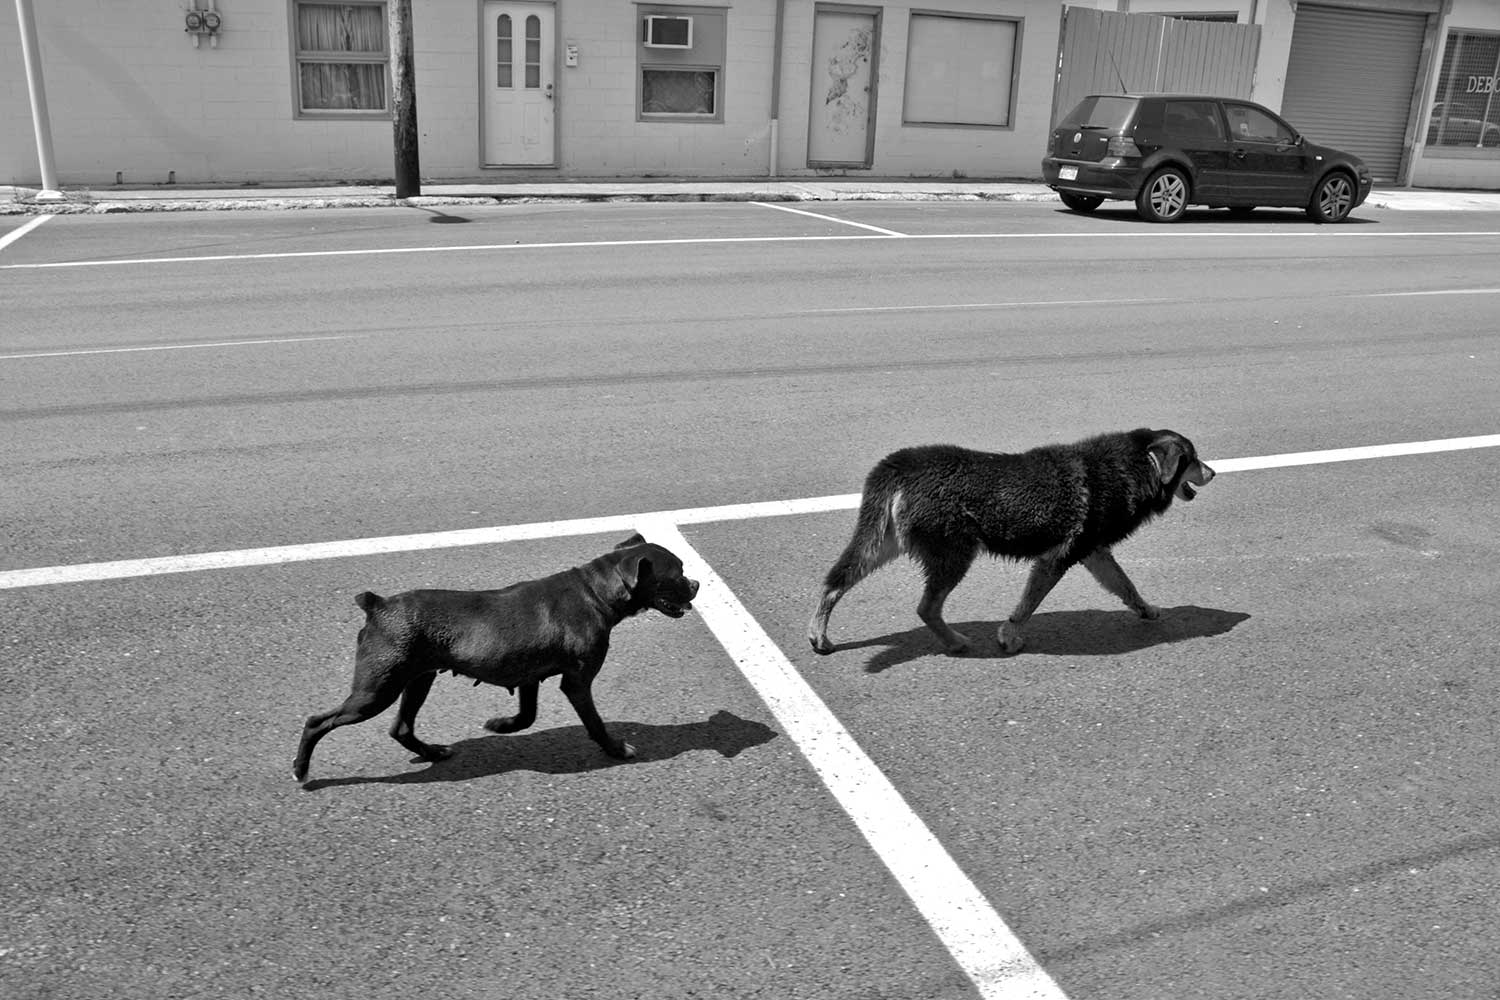 Two canine friends obey the rules of the road while searching for water and shade. photo by Corinne Oglesby - 2010